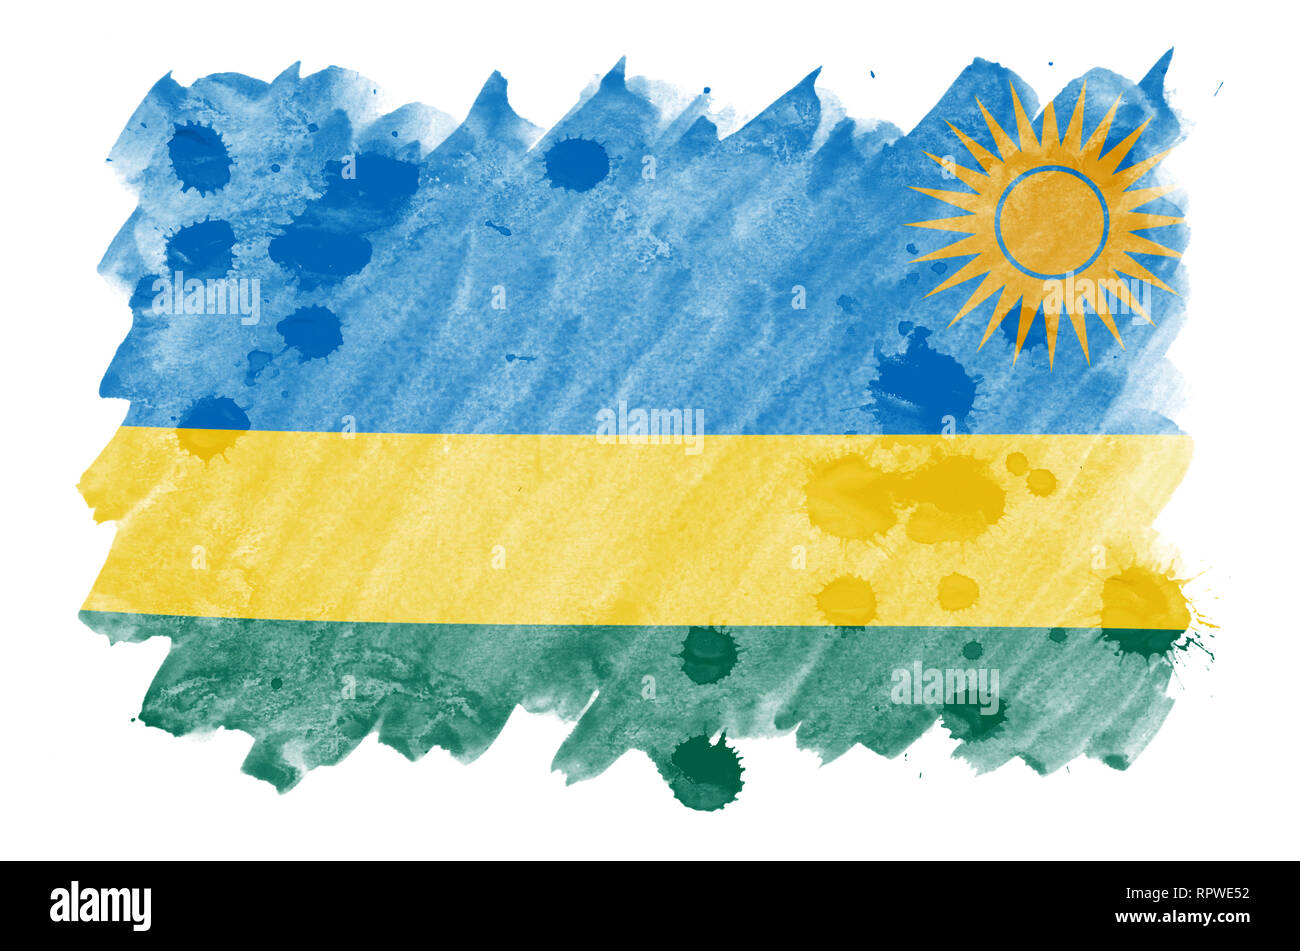 Rwanda flag  is depicted in liquid watercolor style isolated on white background. Careless paint shading with image of national flag. Independence Day - Stock Image